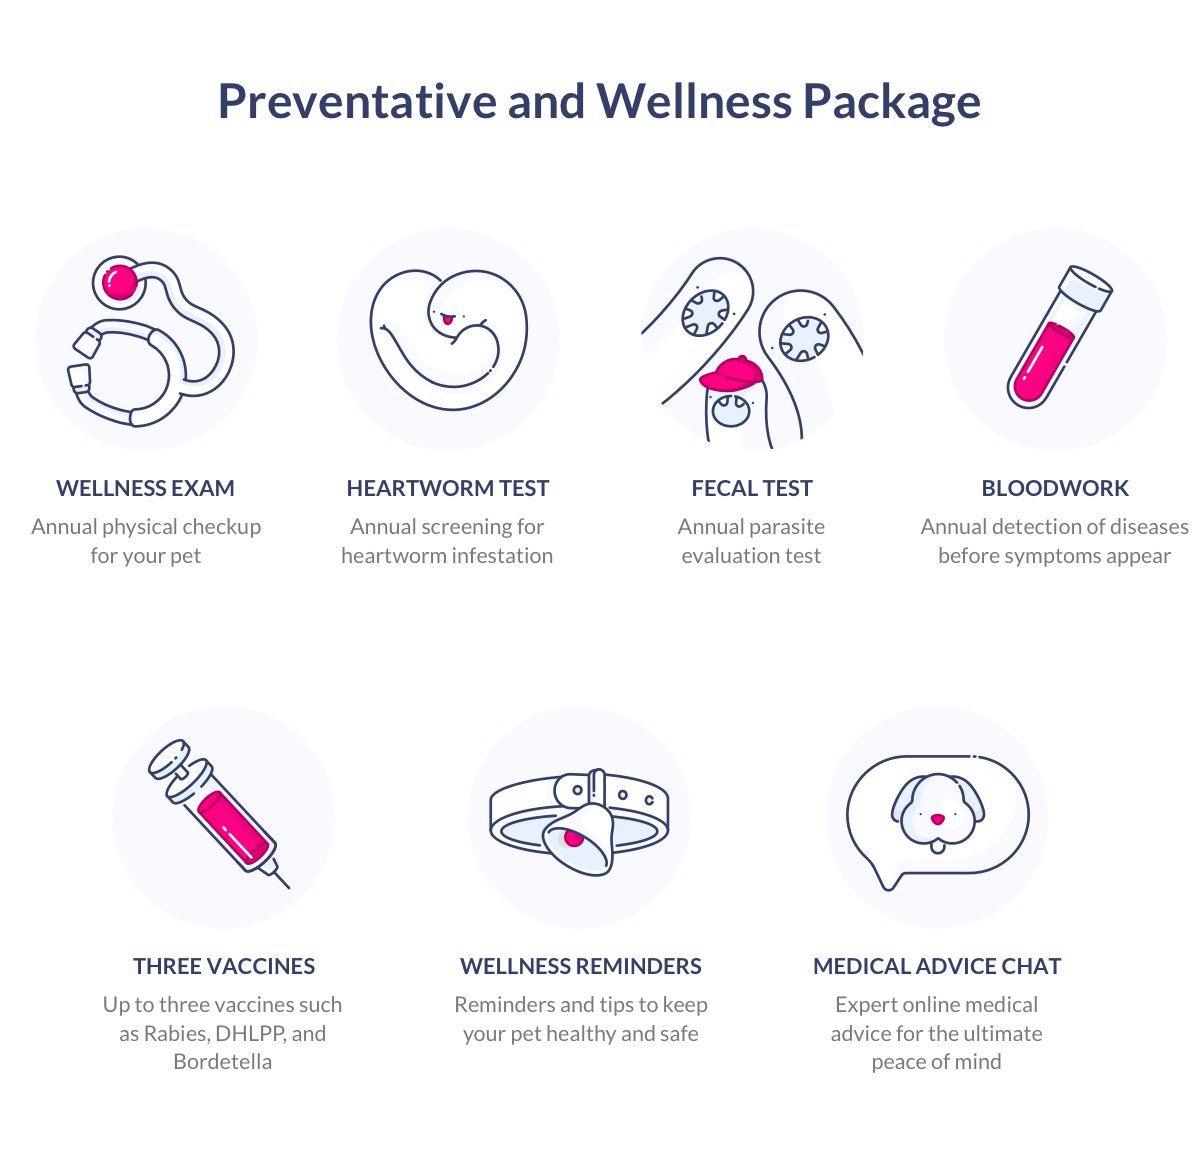 dog insurance preventative and wellness package example